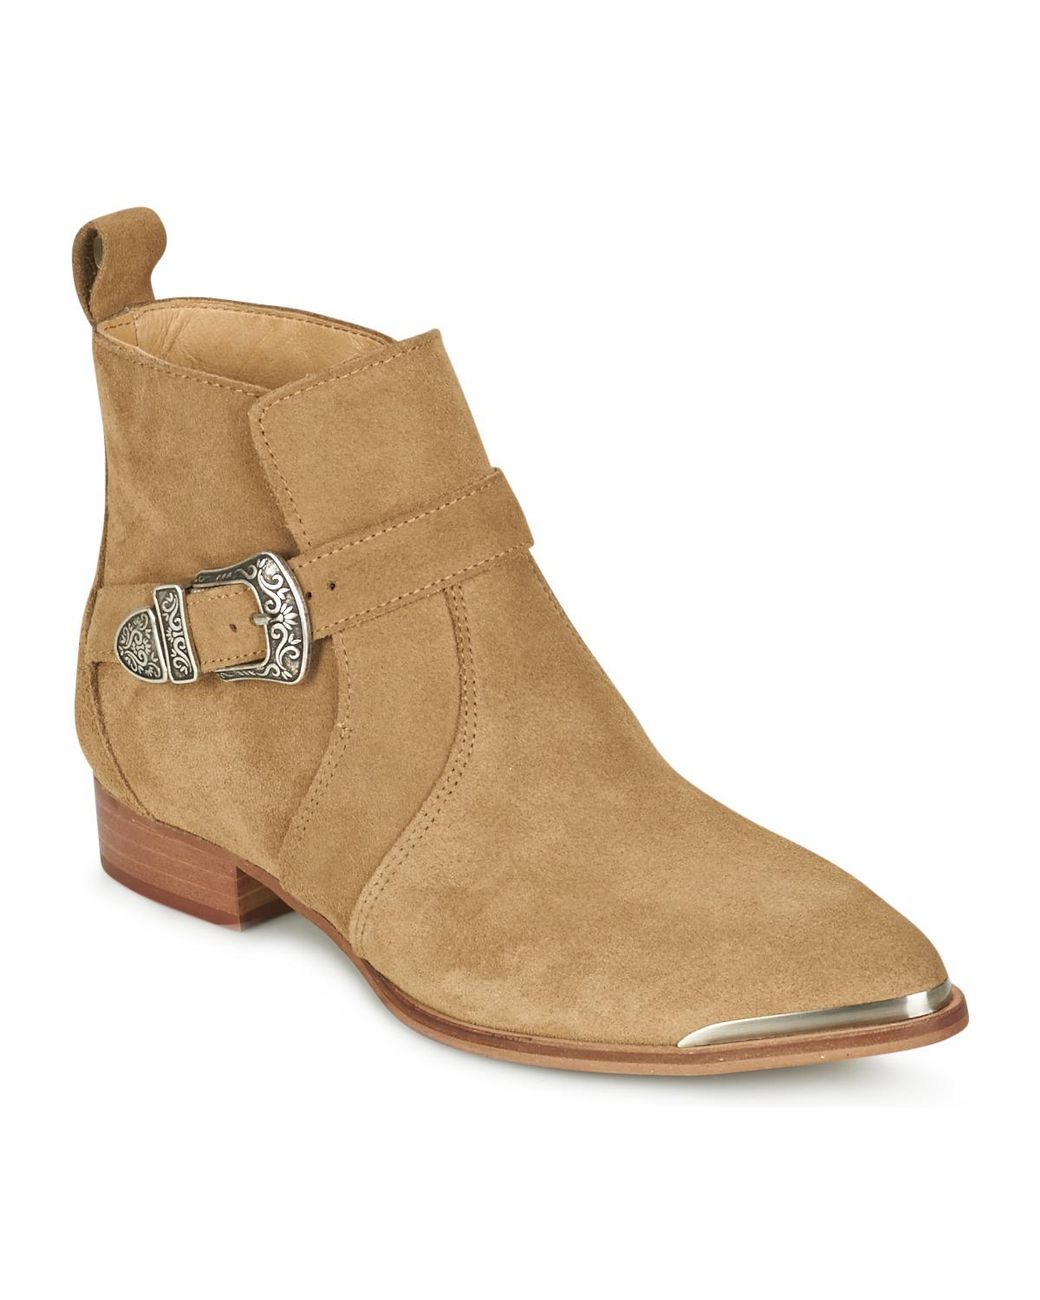 Classique Bottes Timberland Woods Timberland Bottes Linden Classique Woods Woods Timberland Linden Bottes Linden mNw80n